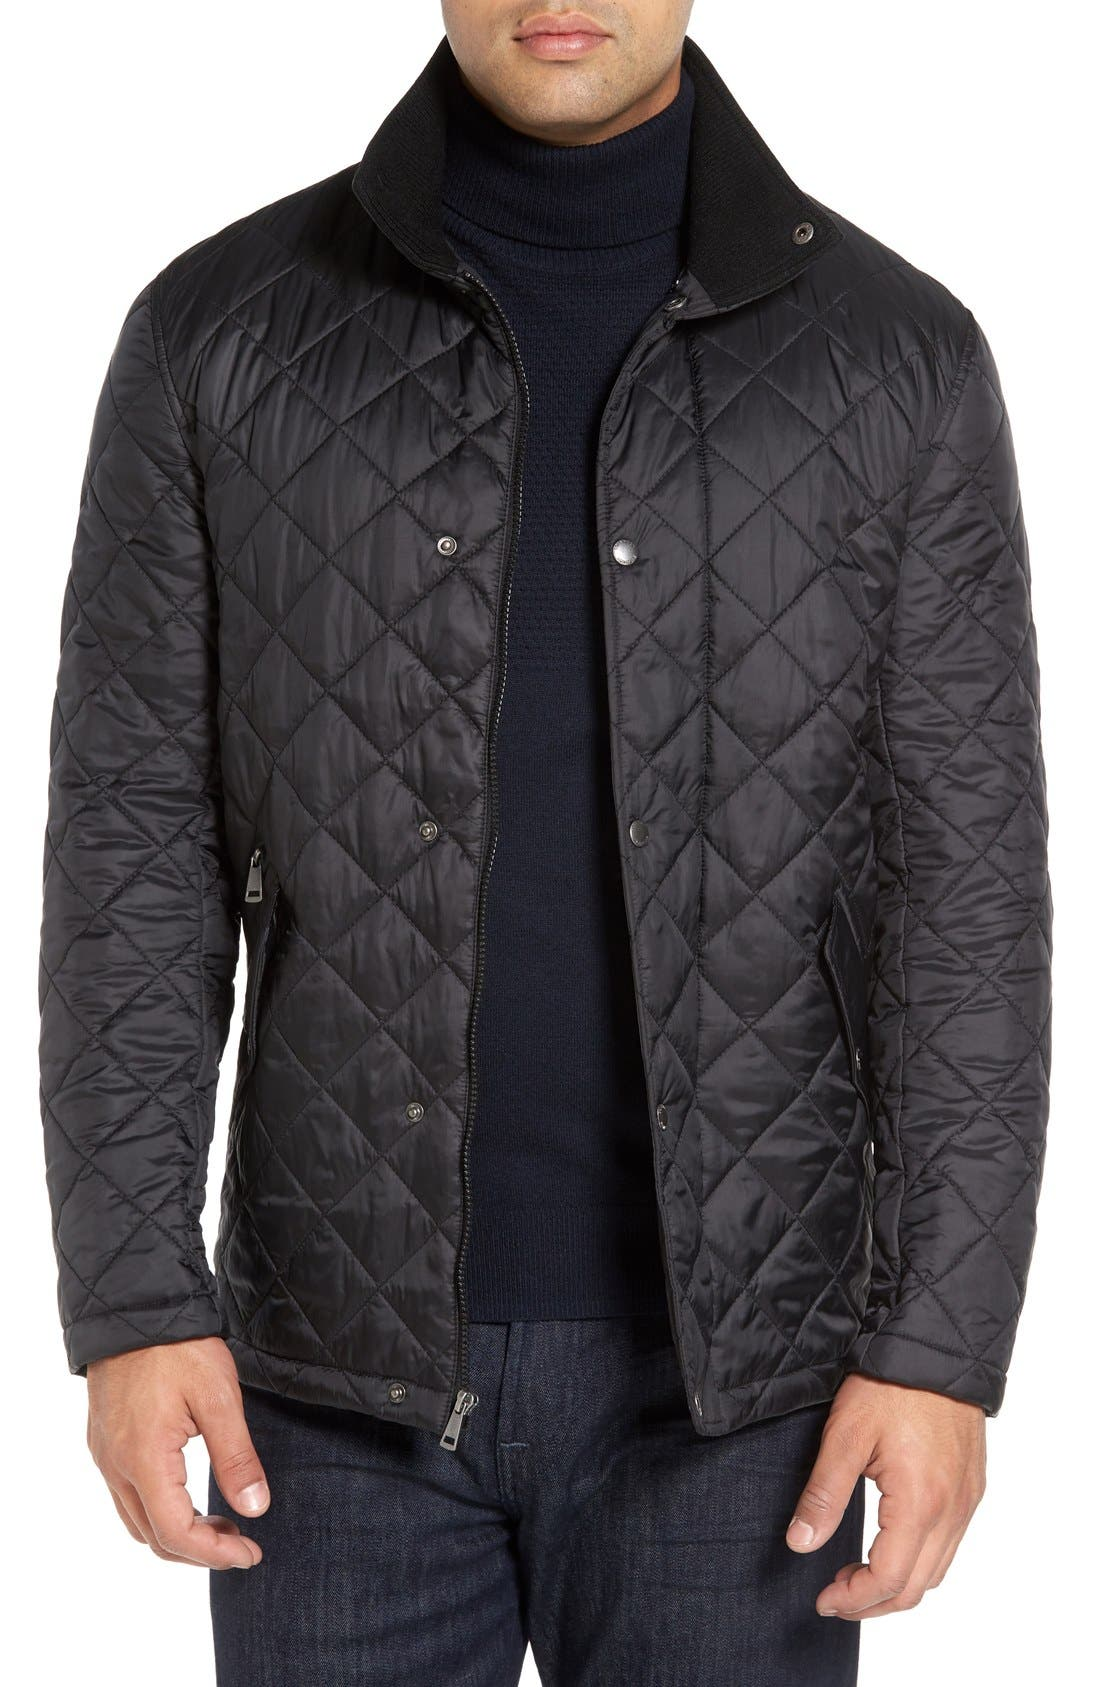 Diamond Quilted Jacket,                             Main thumbnail 2, color,                             Black